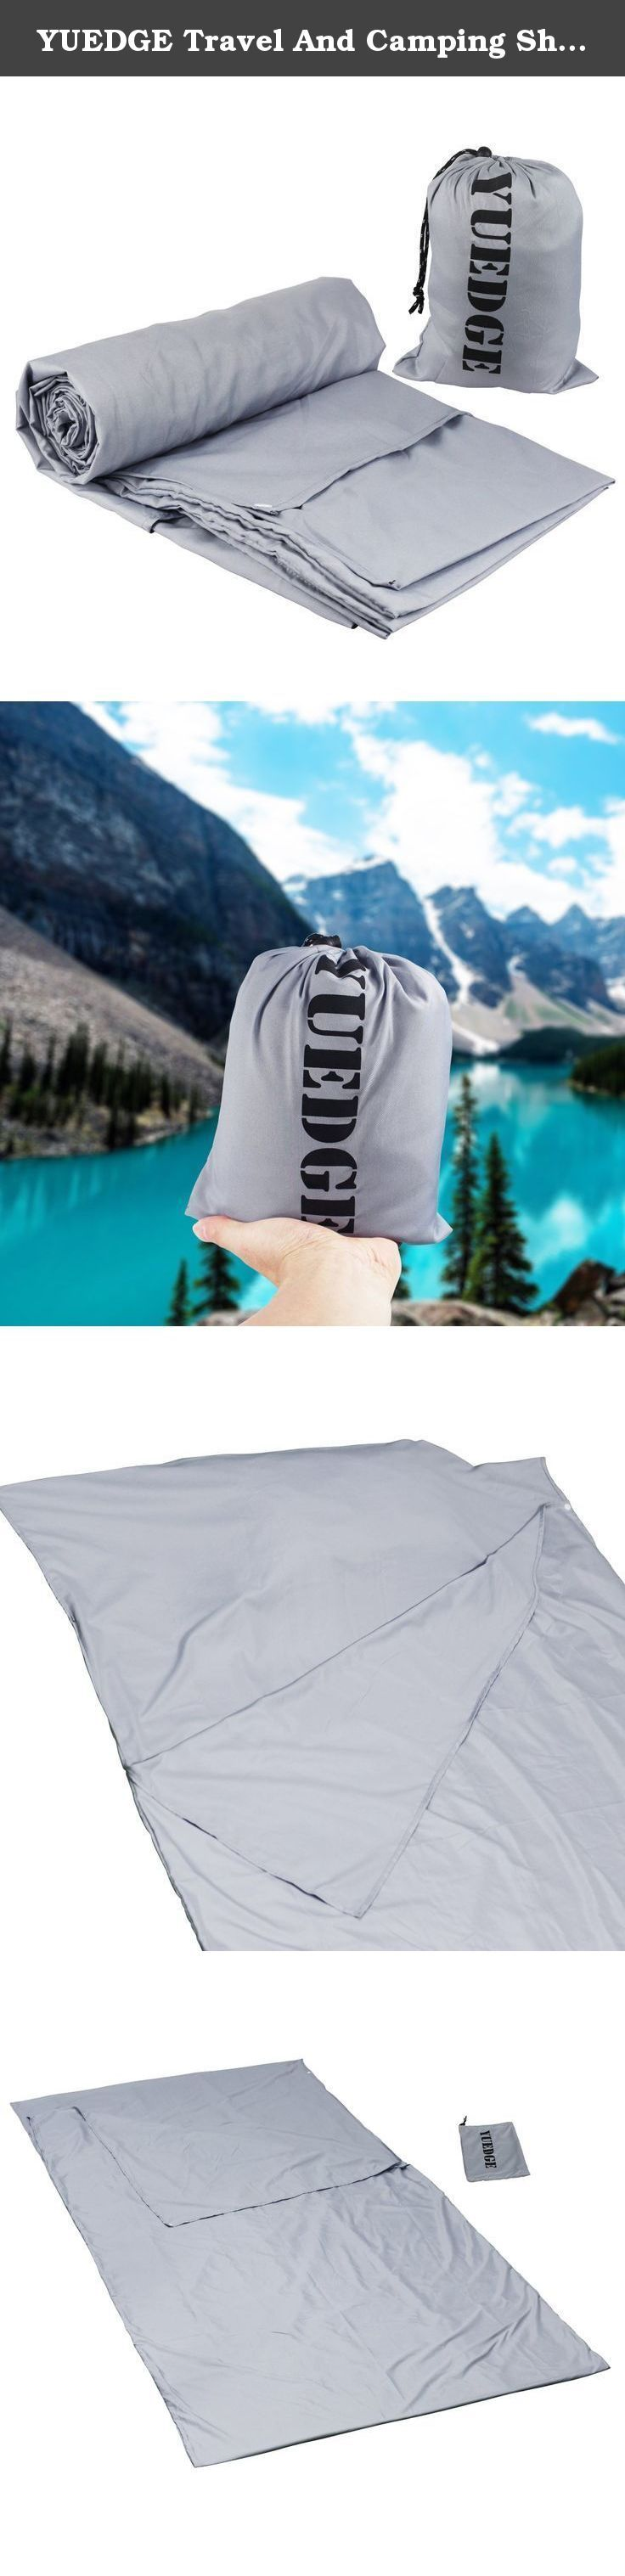 YUEDGE Travel And Camping Sheet Sleeping bag Liner Compact Sleep Bag And Sack Comfortable, For Travel, Youth Hostel, Picnic, Plane, Train. YUEDGE Travel And Camping Sheet Sleeping Bag Liner LUXURIOUS SPACE The liner is 220cm (86.6 inch) in Length and 110cm (43.3 inch) in width,which is the MOST luxurious size of a single sleeping bag liner.Please compare the size with other liners with a standard size of 210*90cm (83*35 inch). Even tall people will have generous space to move around and...